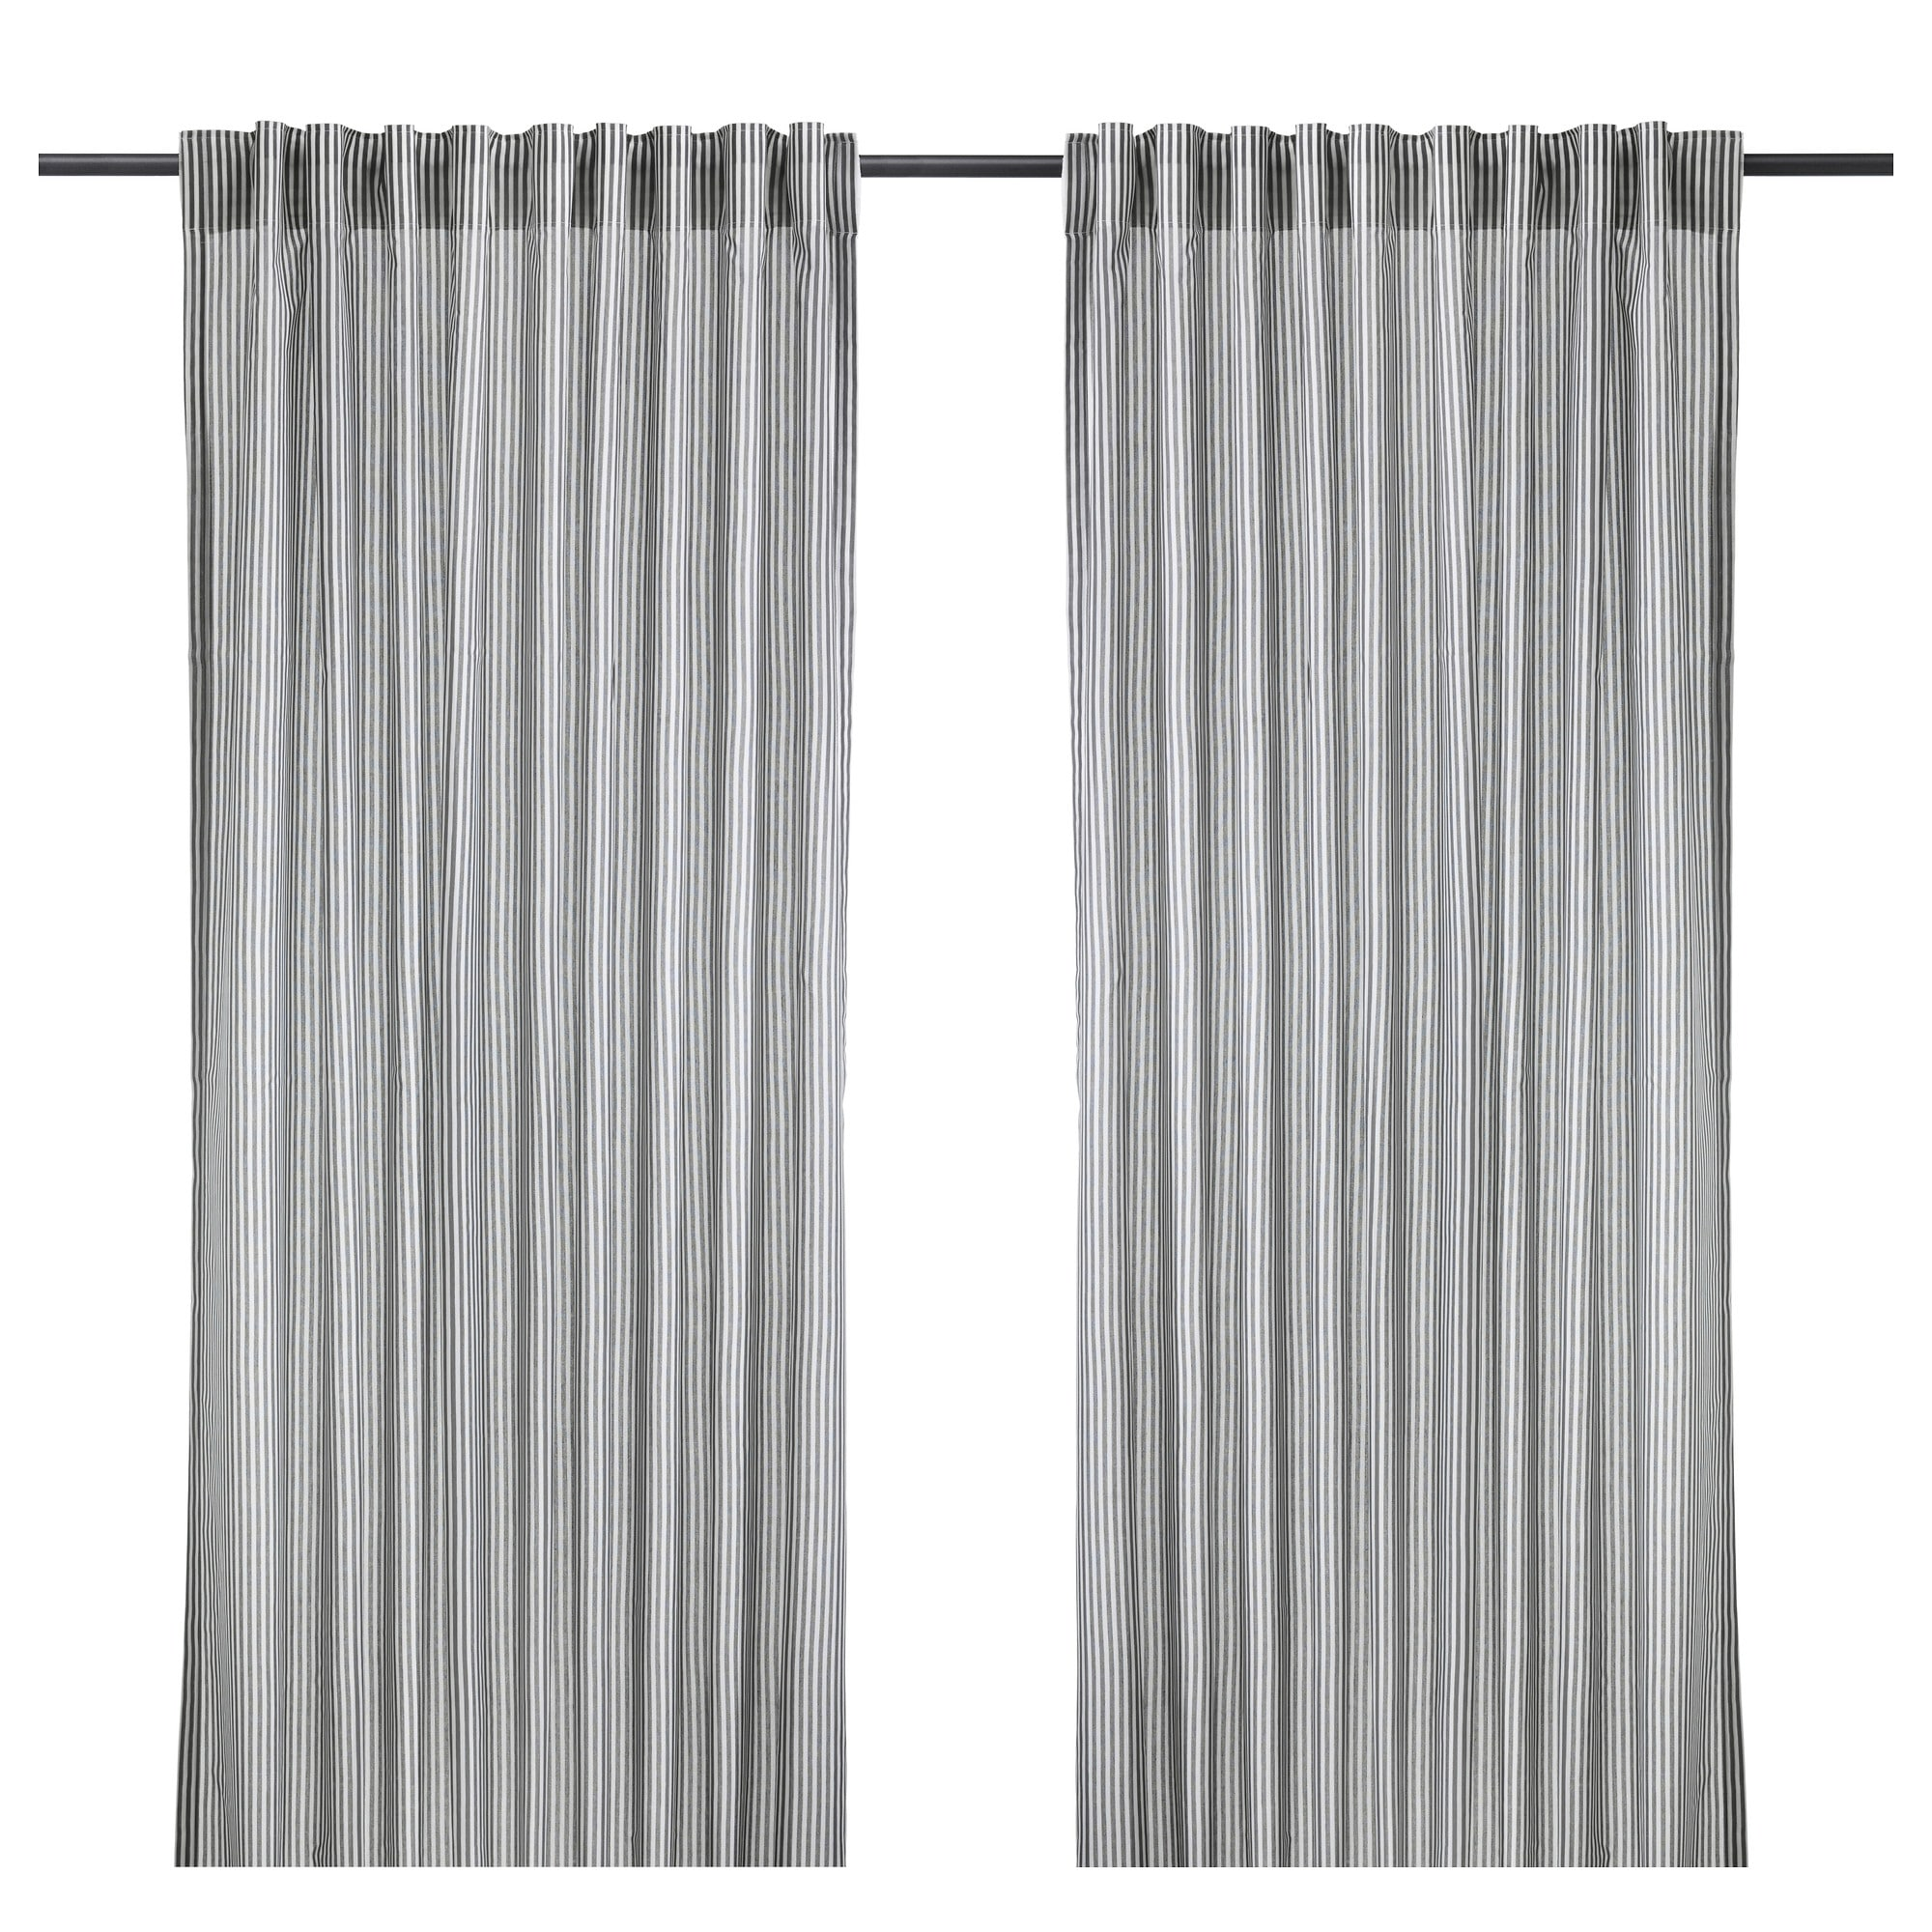 Mini curtain rods - Gulsporre Curtains 1 Pair White Gray Length 98 Width 57